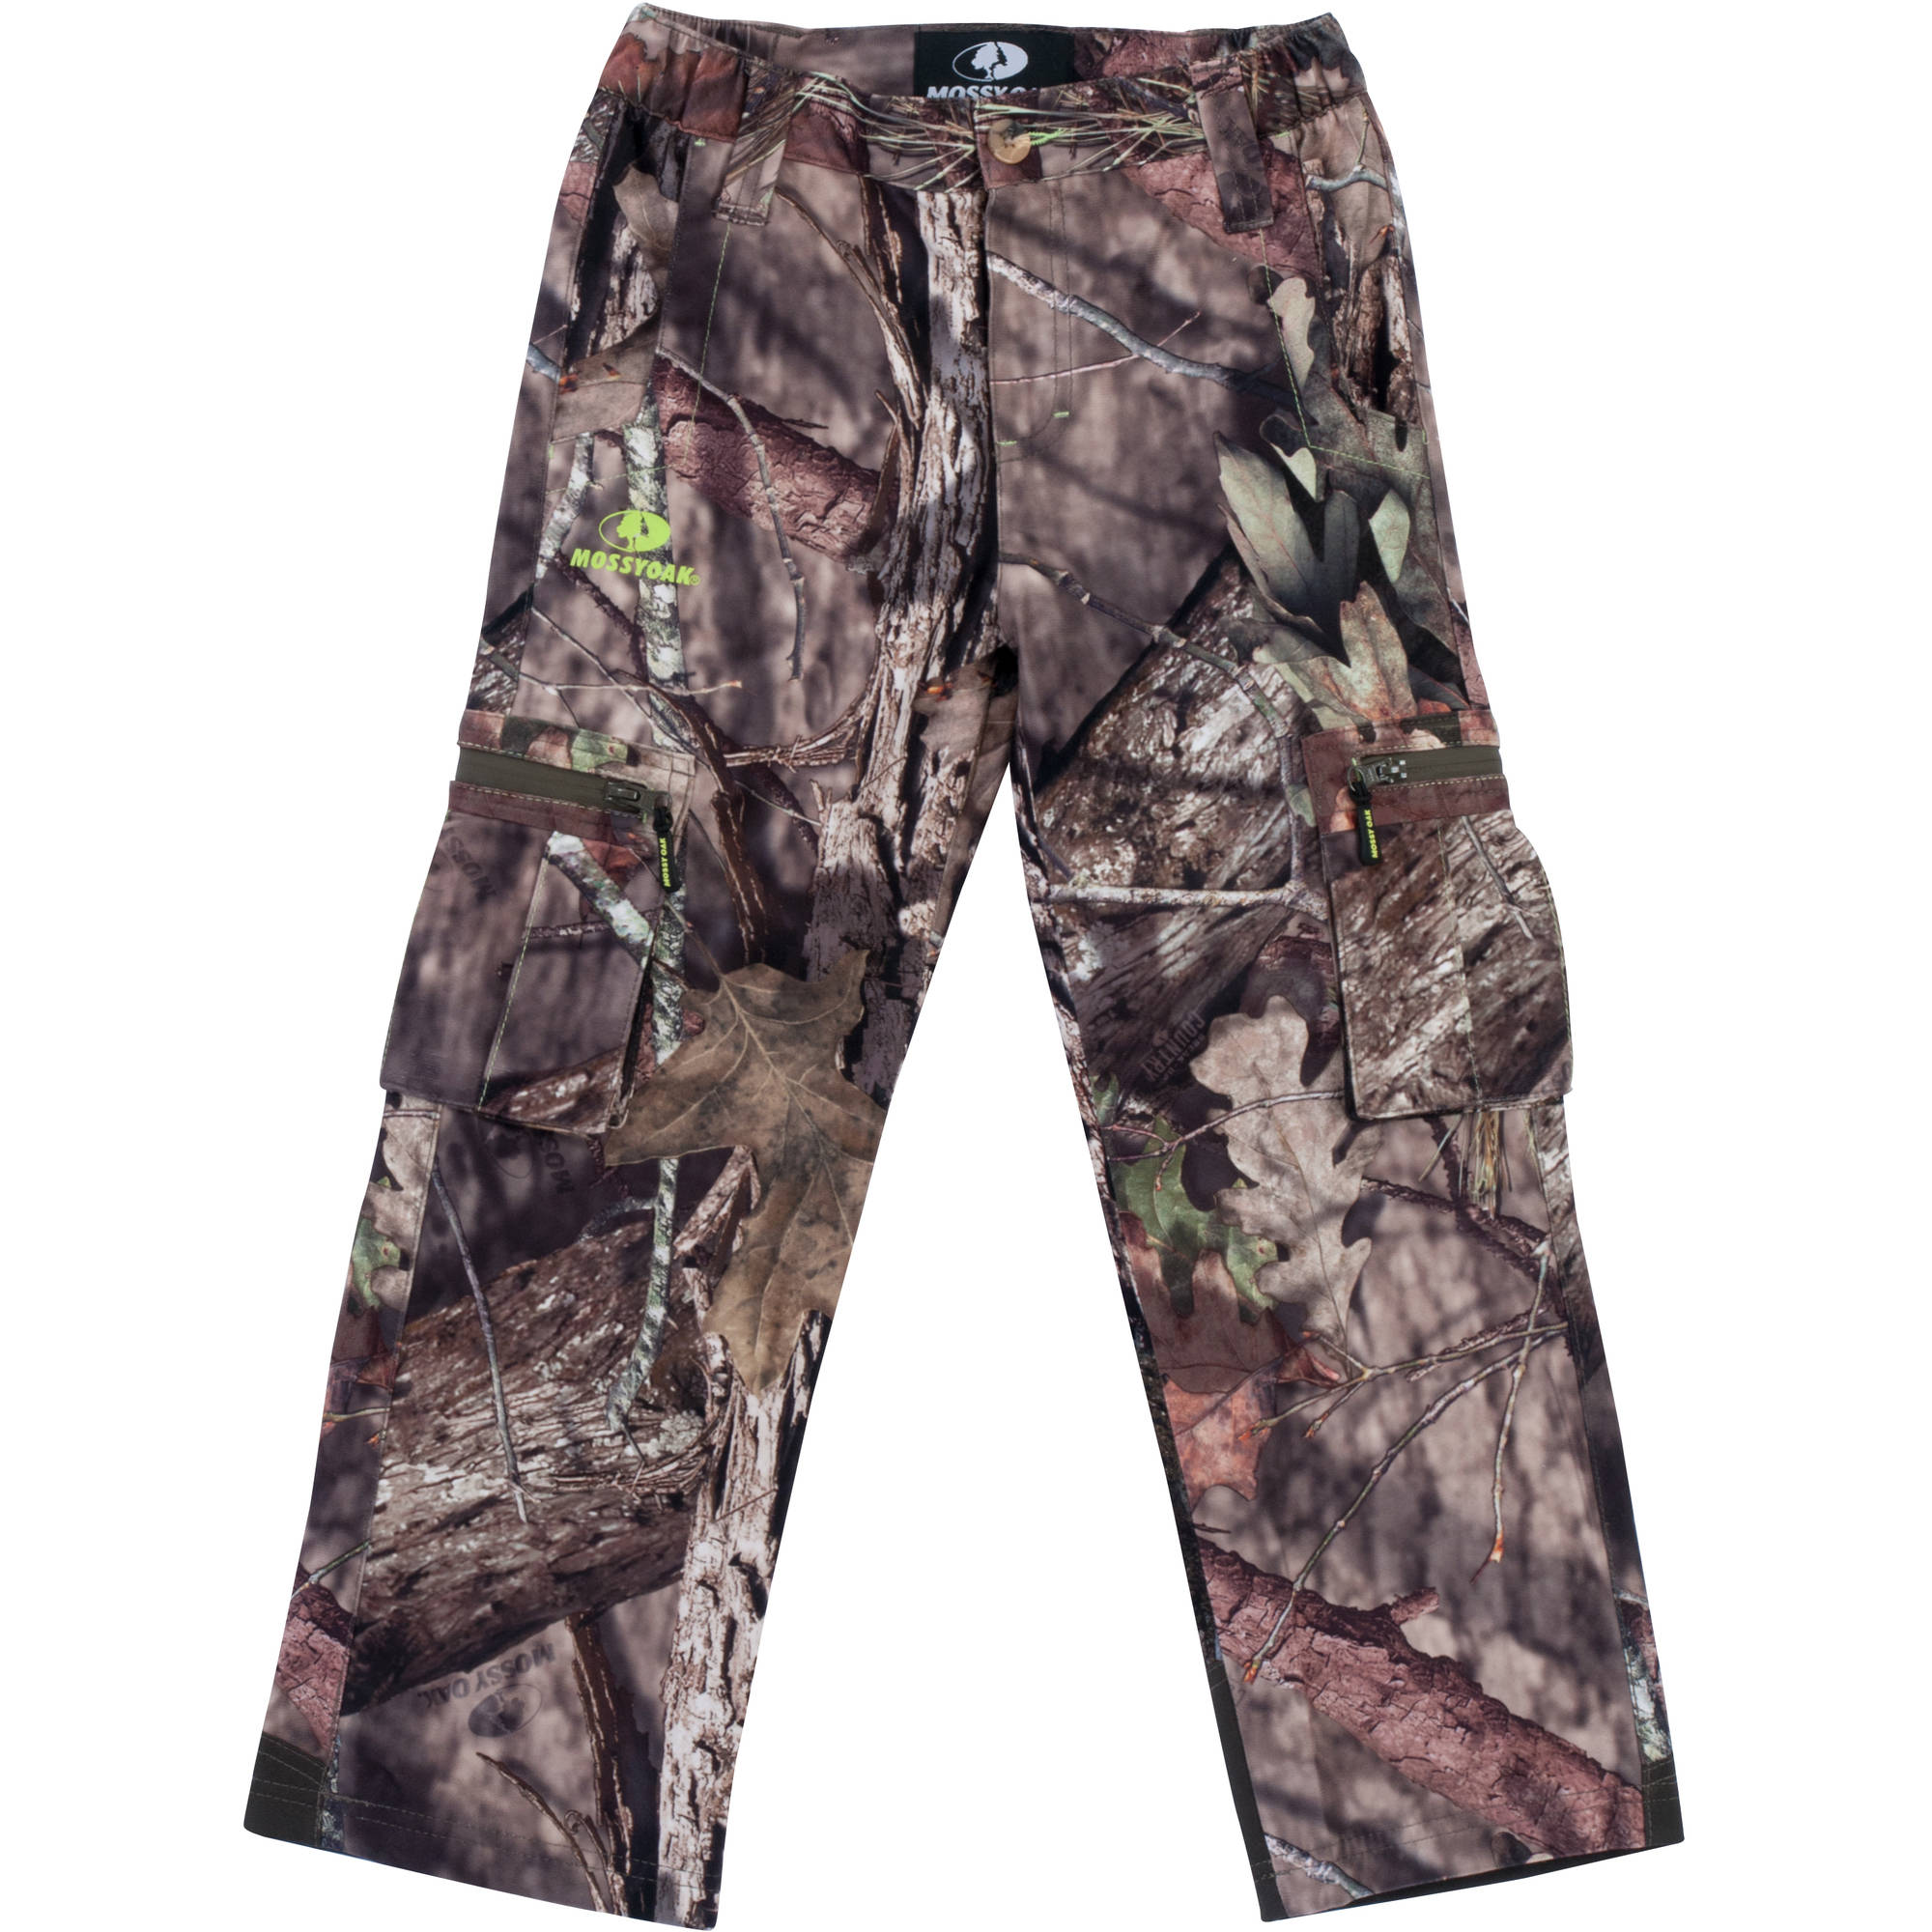 Youth Scent Control Pants, Available in Realtree and